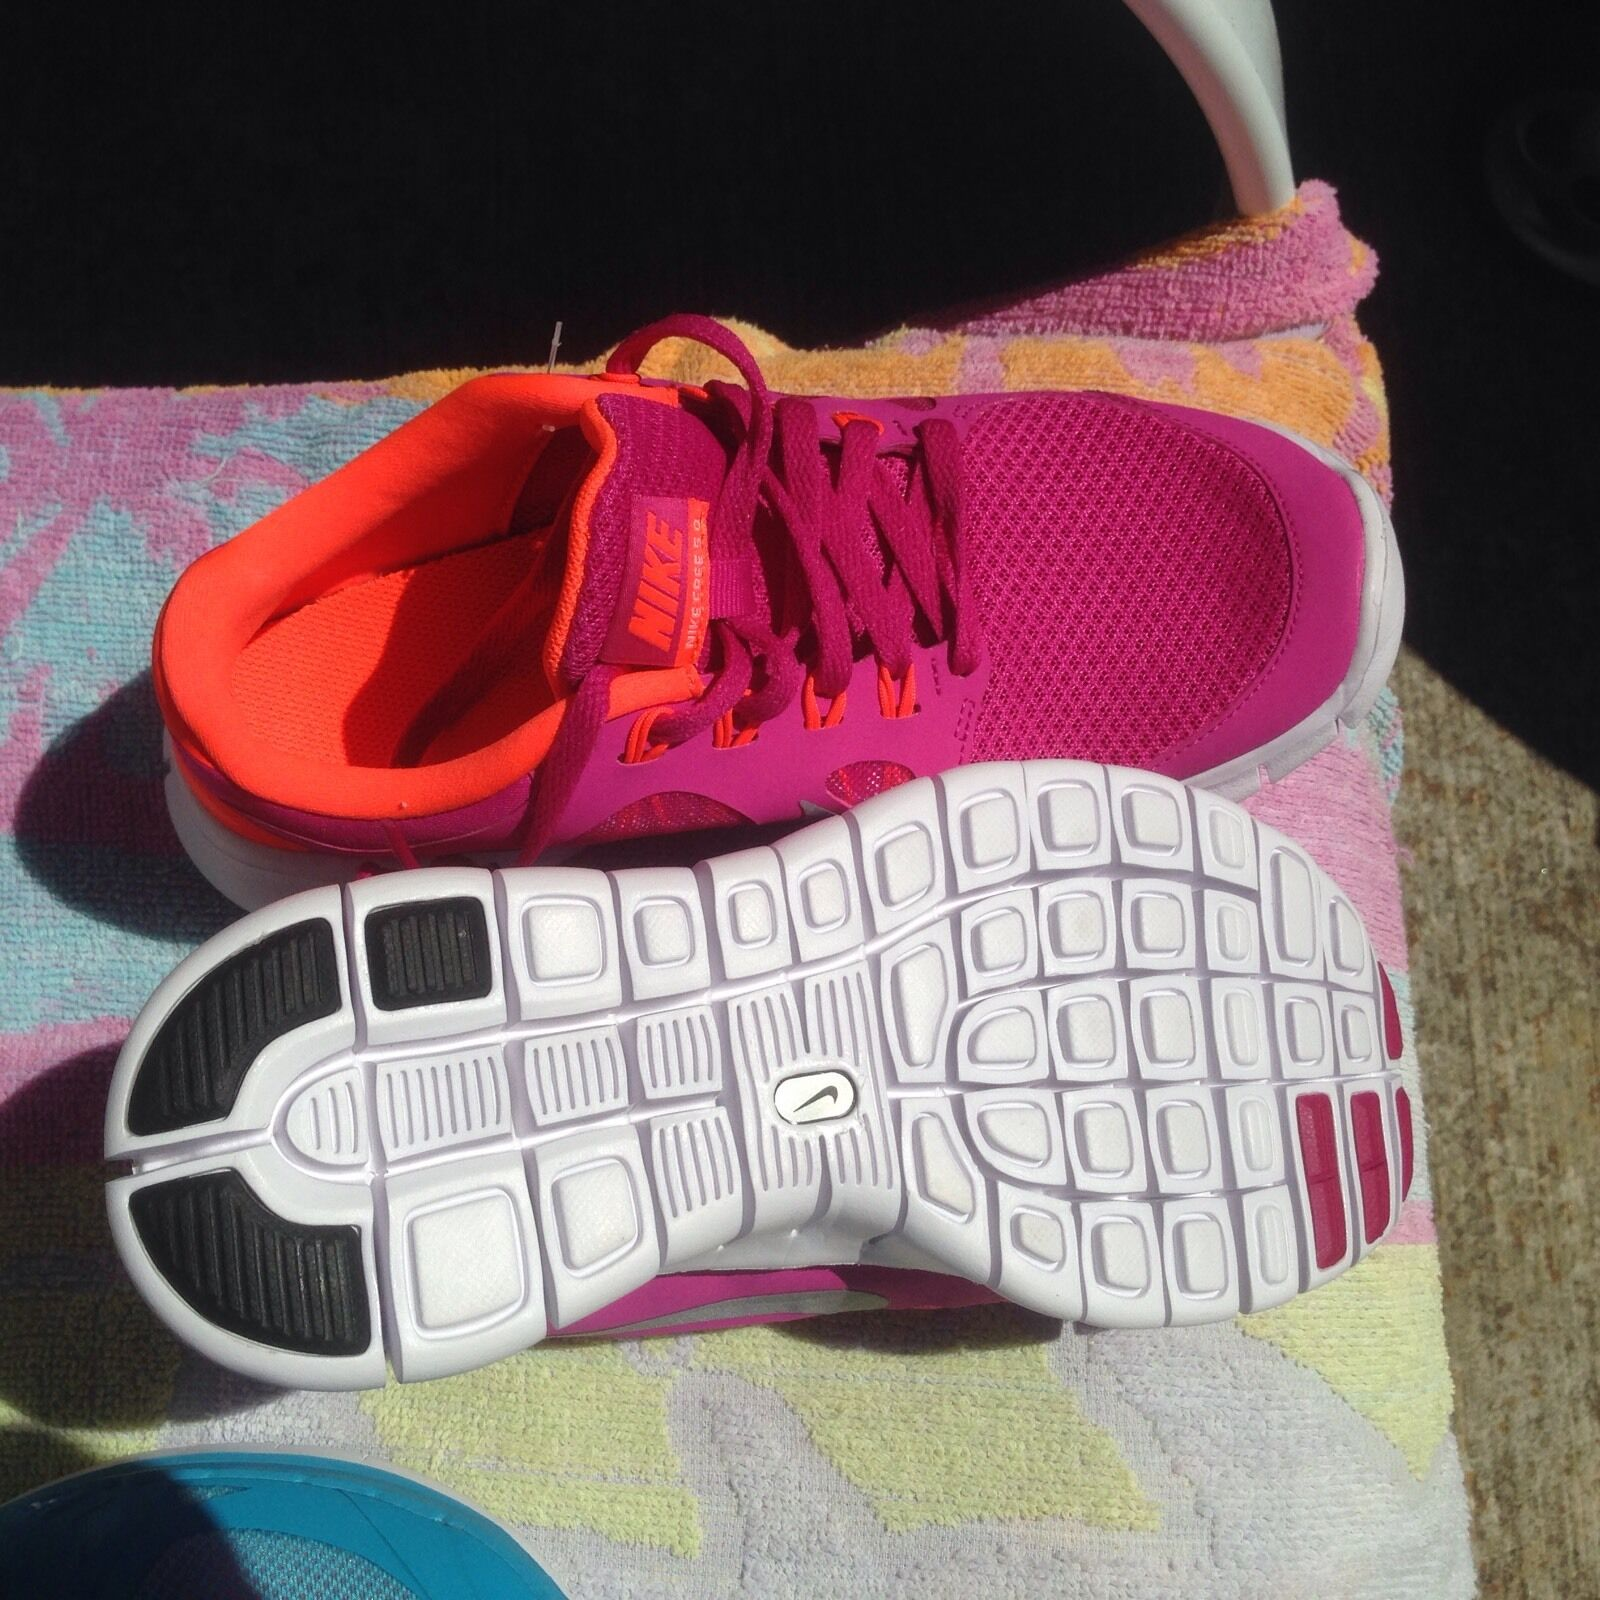 12241c0f50edf New New New Lot Of 2 Pairs women s Nike Free 5.0 in Size 5Y(7-7.5M ...